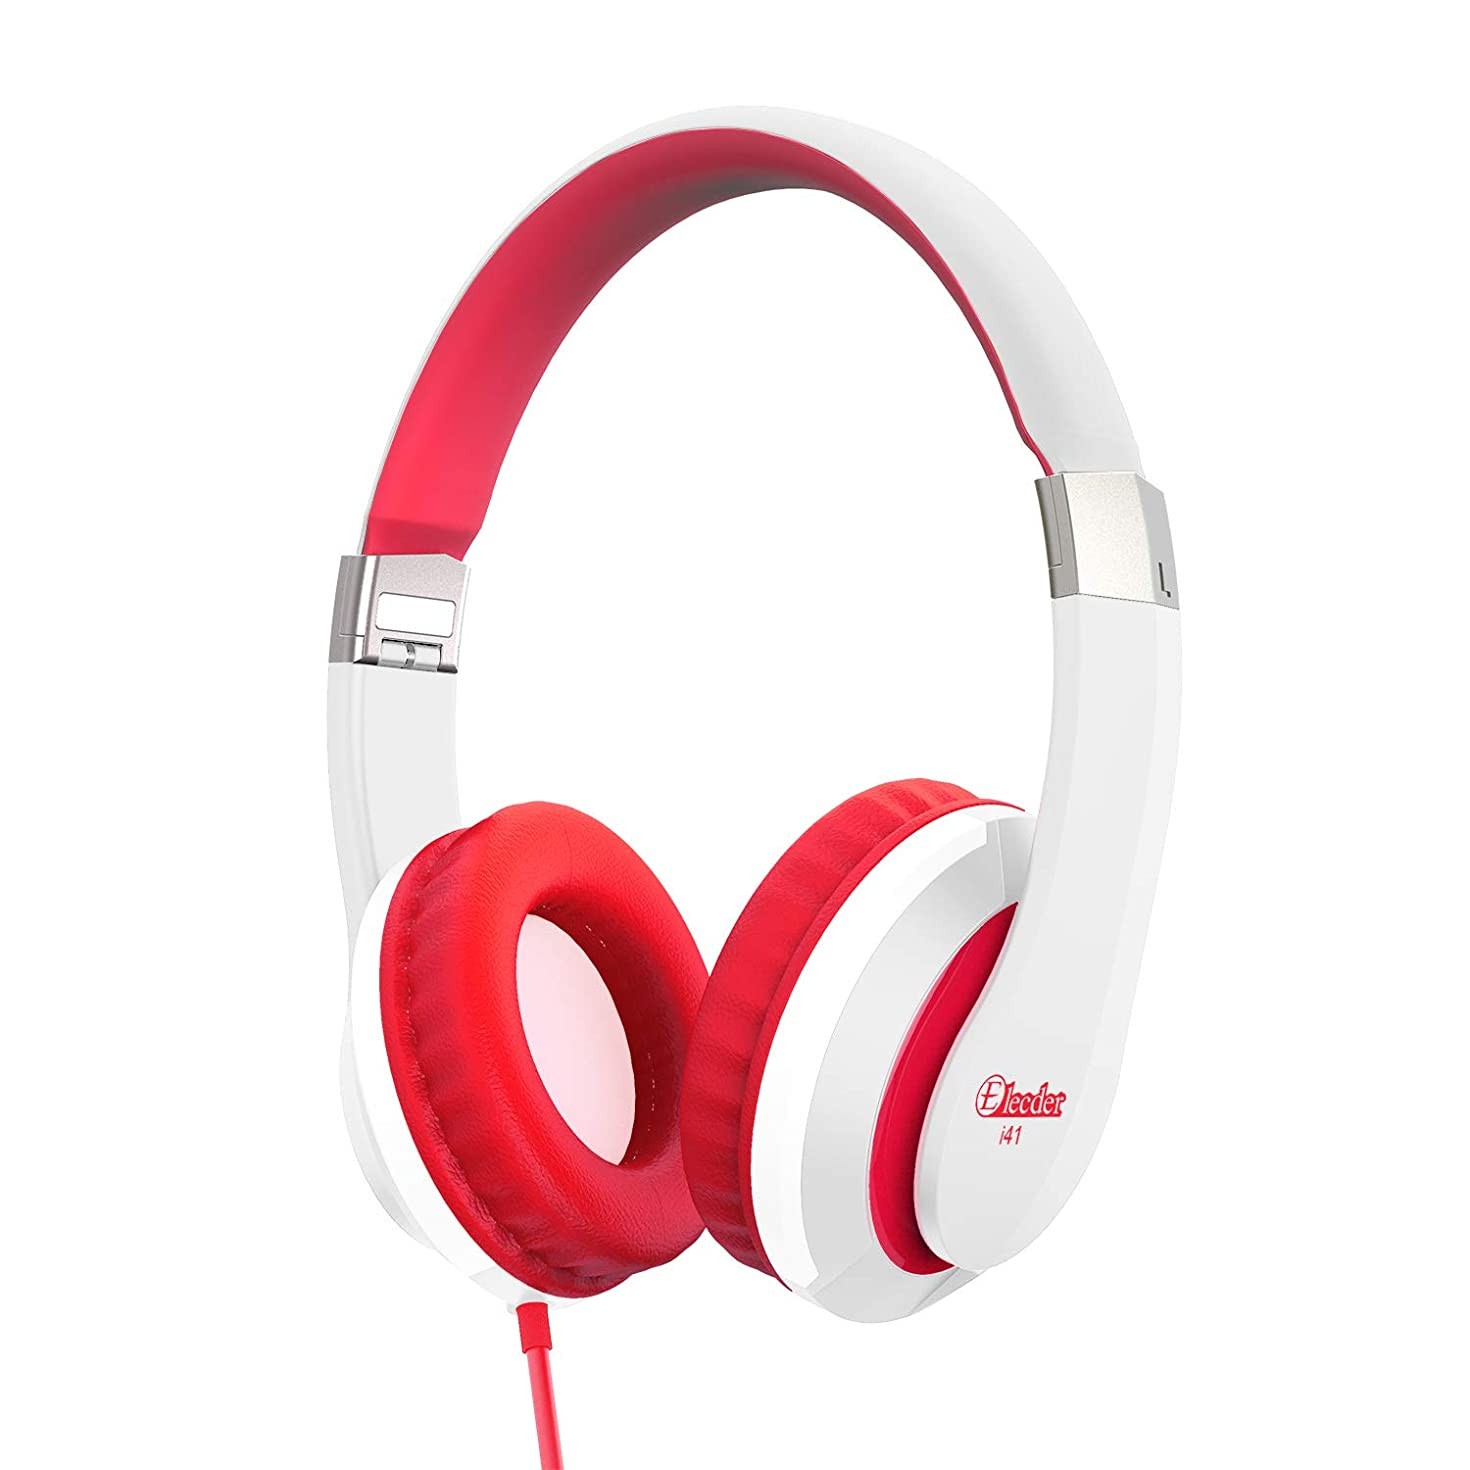 Kids Headphones Elecder i41 for Kids Children Girls Boys Teens Foldable Adjustable On Ear Headphones with 3.5mm Jack for iPad Cellphones Computer MP3/4 Kindle Airplane School White/Red